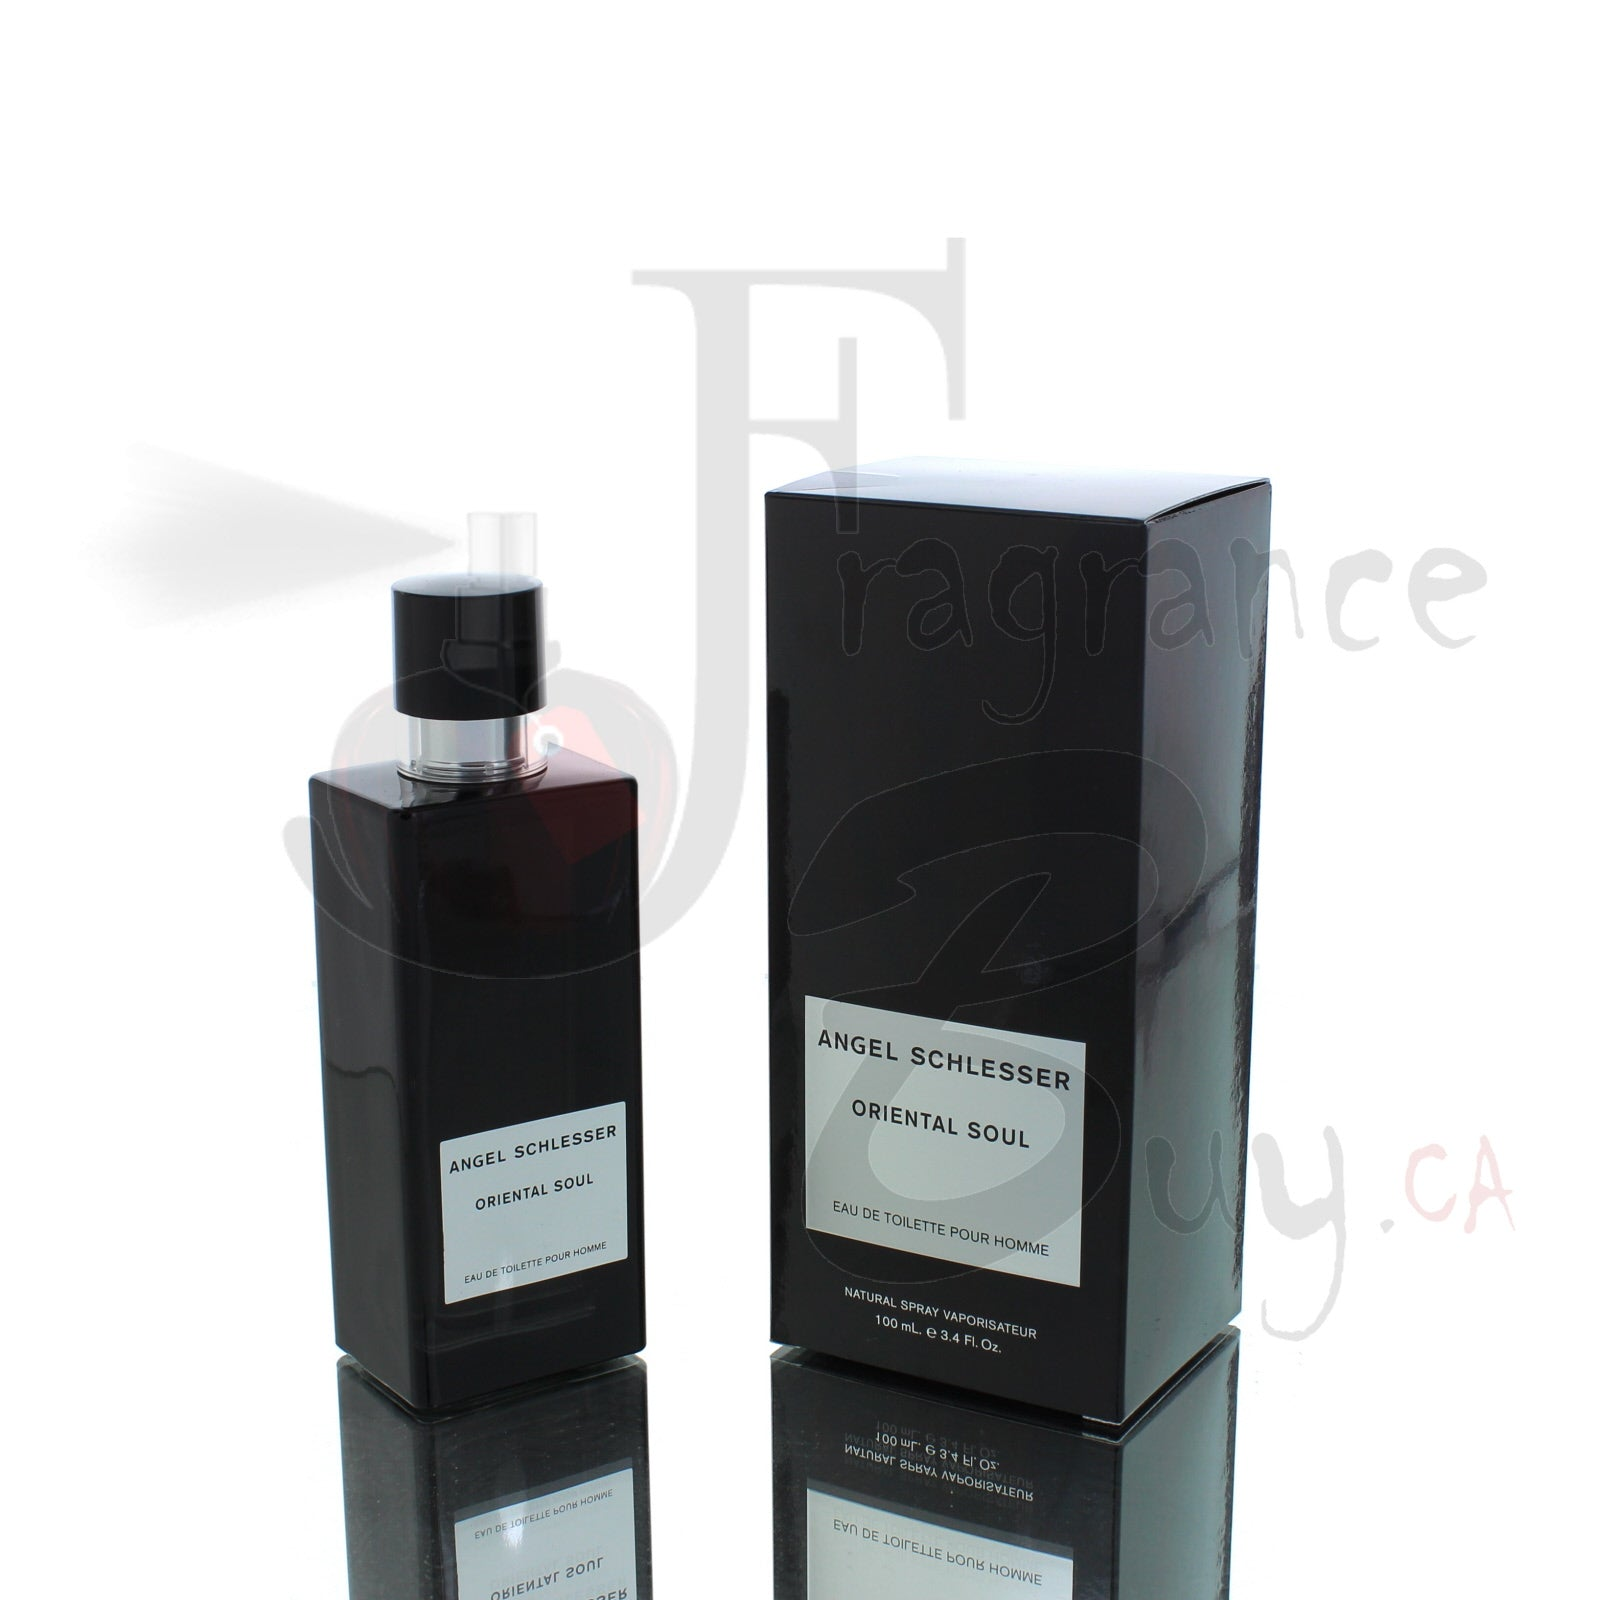 Angel Schlesser Oriental Soul Pour Homme For Man